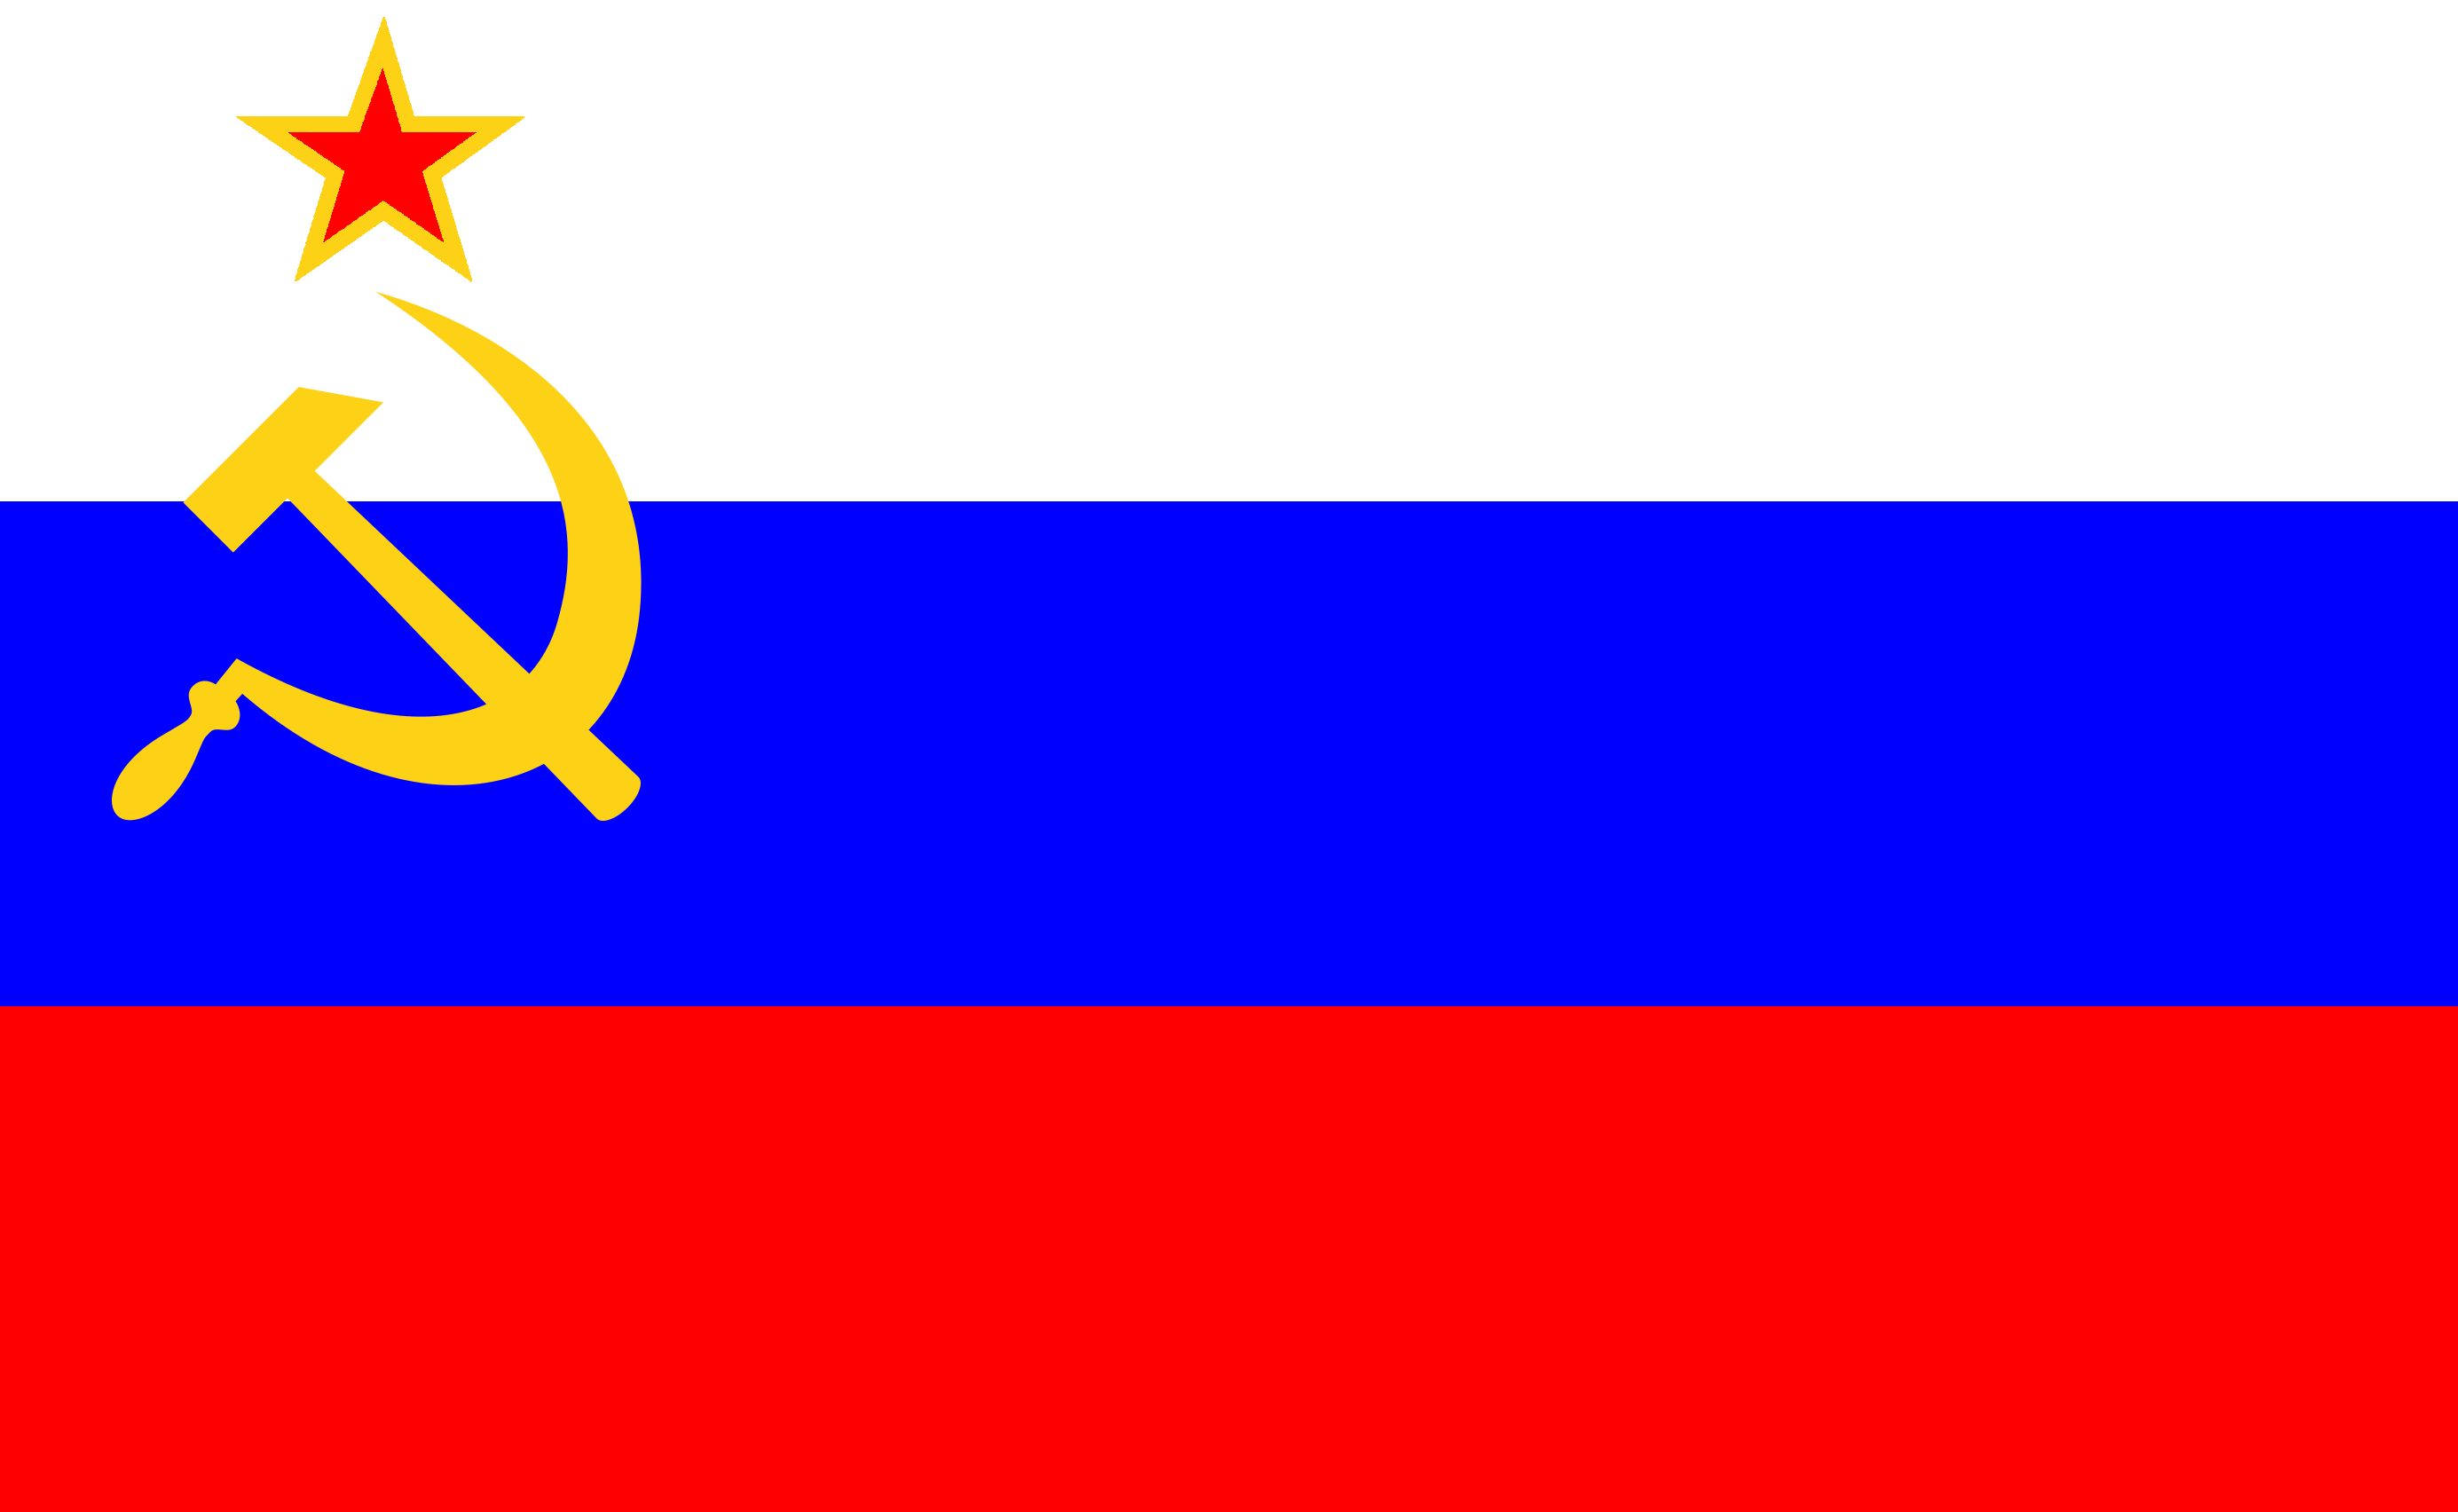 New Russian Flag by thefieldsofice on DeviantArt